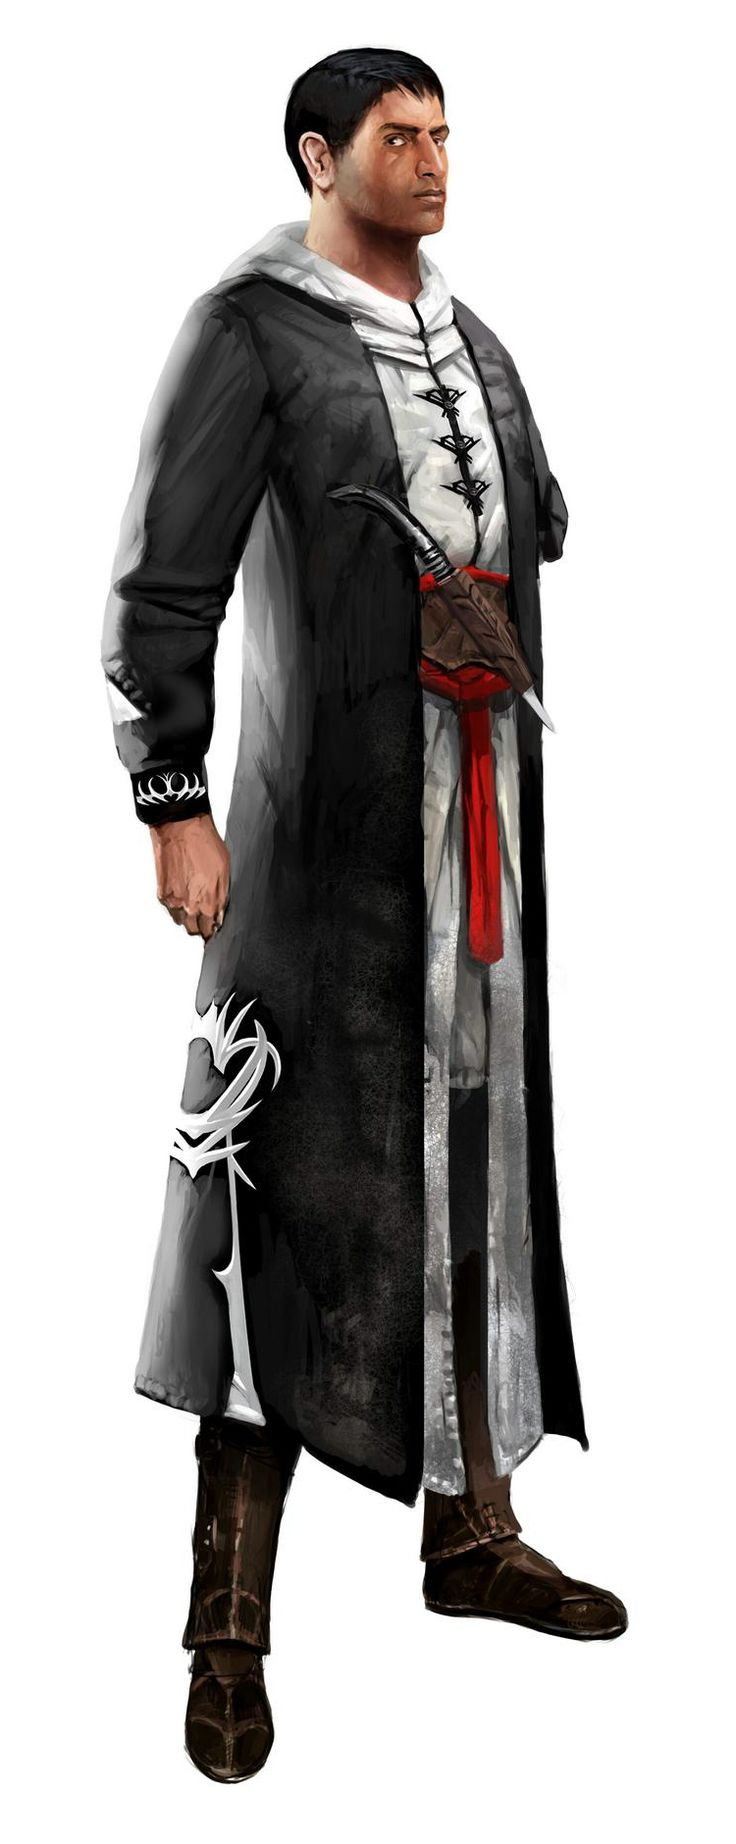 Malik Al-Sayf - The Assassin's Creed Wiki - Assassin's Creed, Assassin's Creed II, Assassin's Creed: Brotherhood, Assassin's Creed: Revelations, walkthroughs and more!